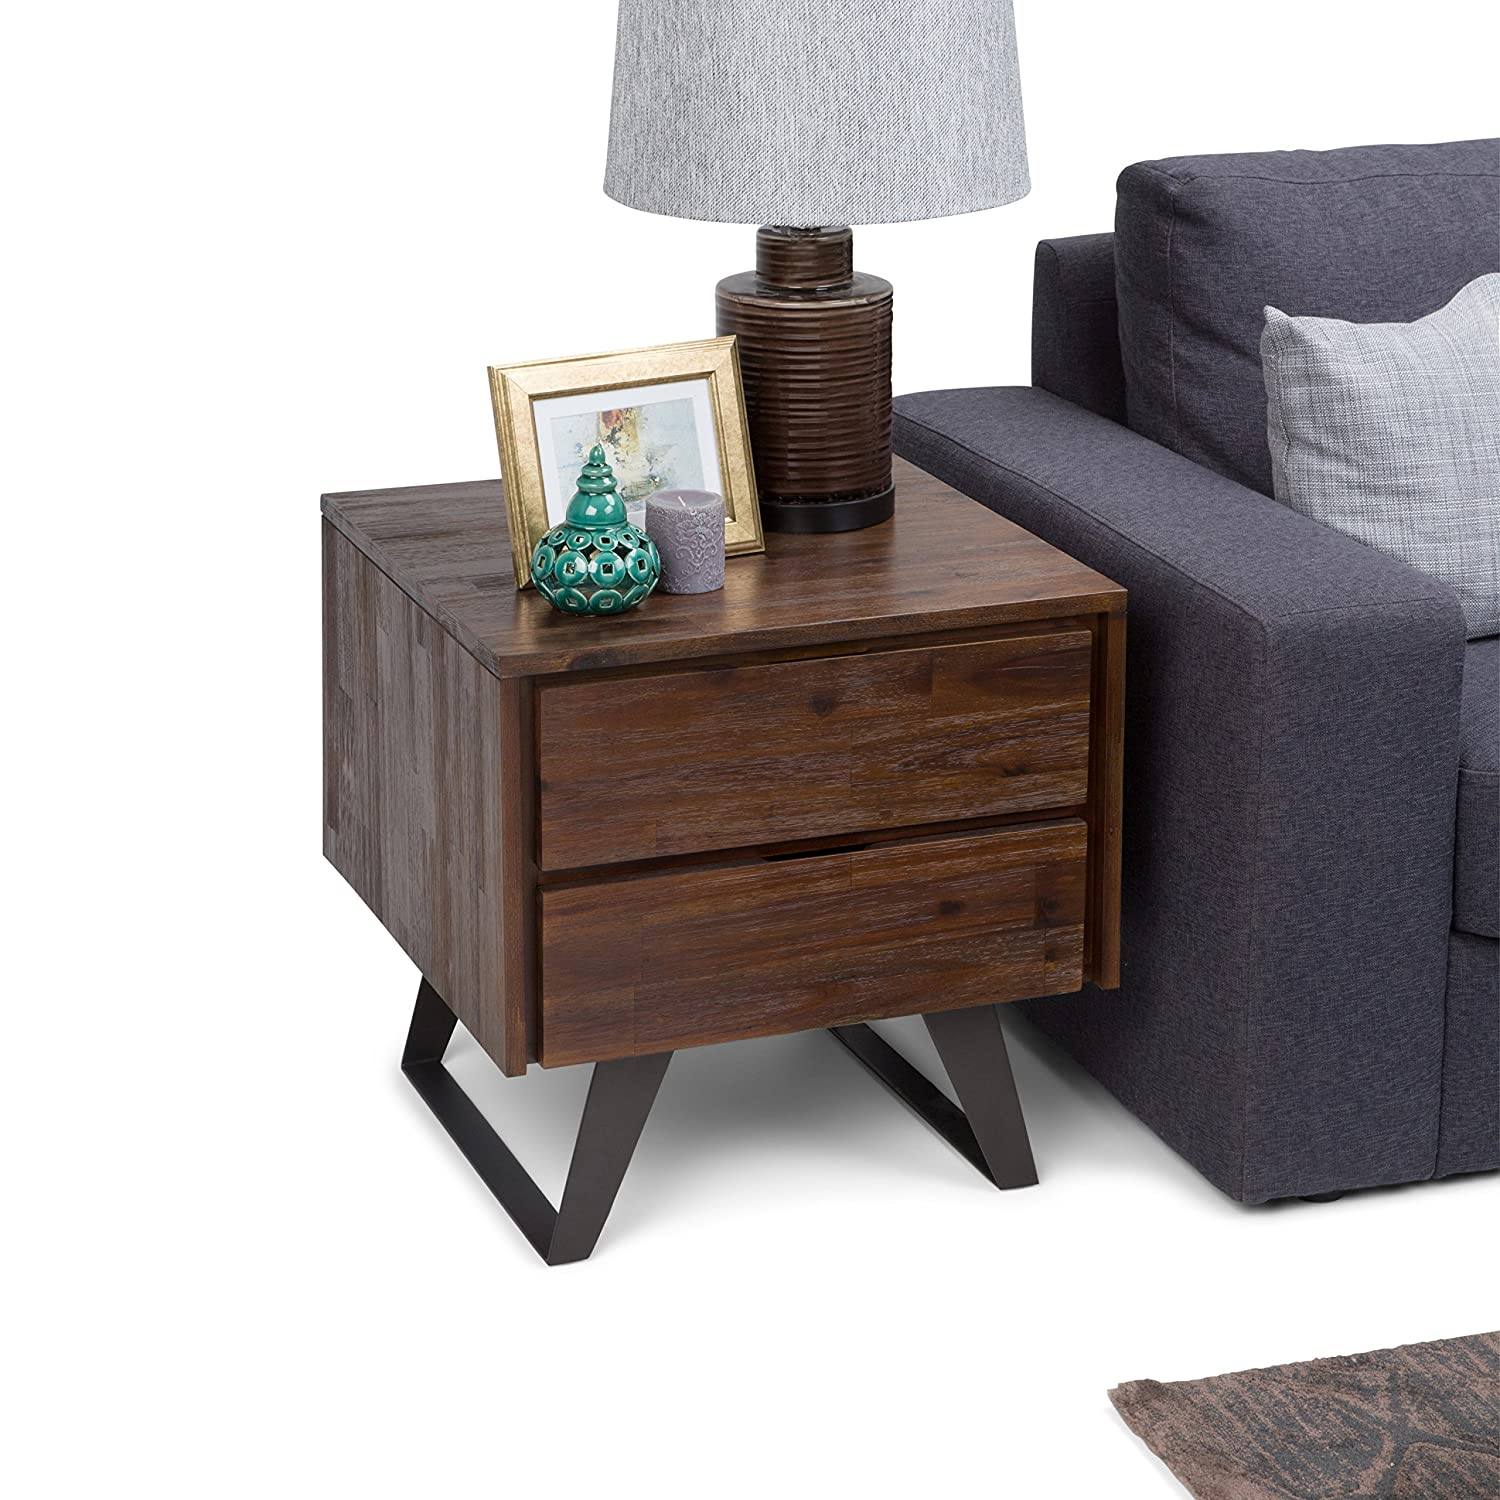 Simpli Home AXCLRY-04 Lowry Solid Acacia Wood and Metal 22 inch wide Square Modern Industrial End Side Table in Distressed Charcoal Brown